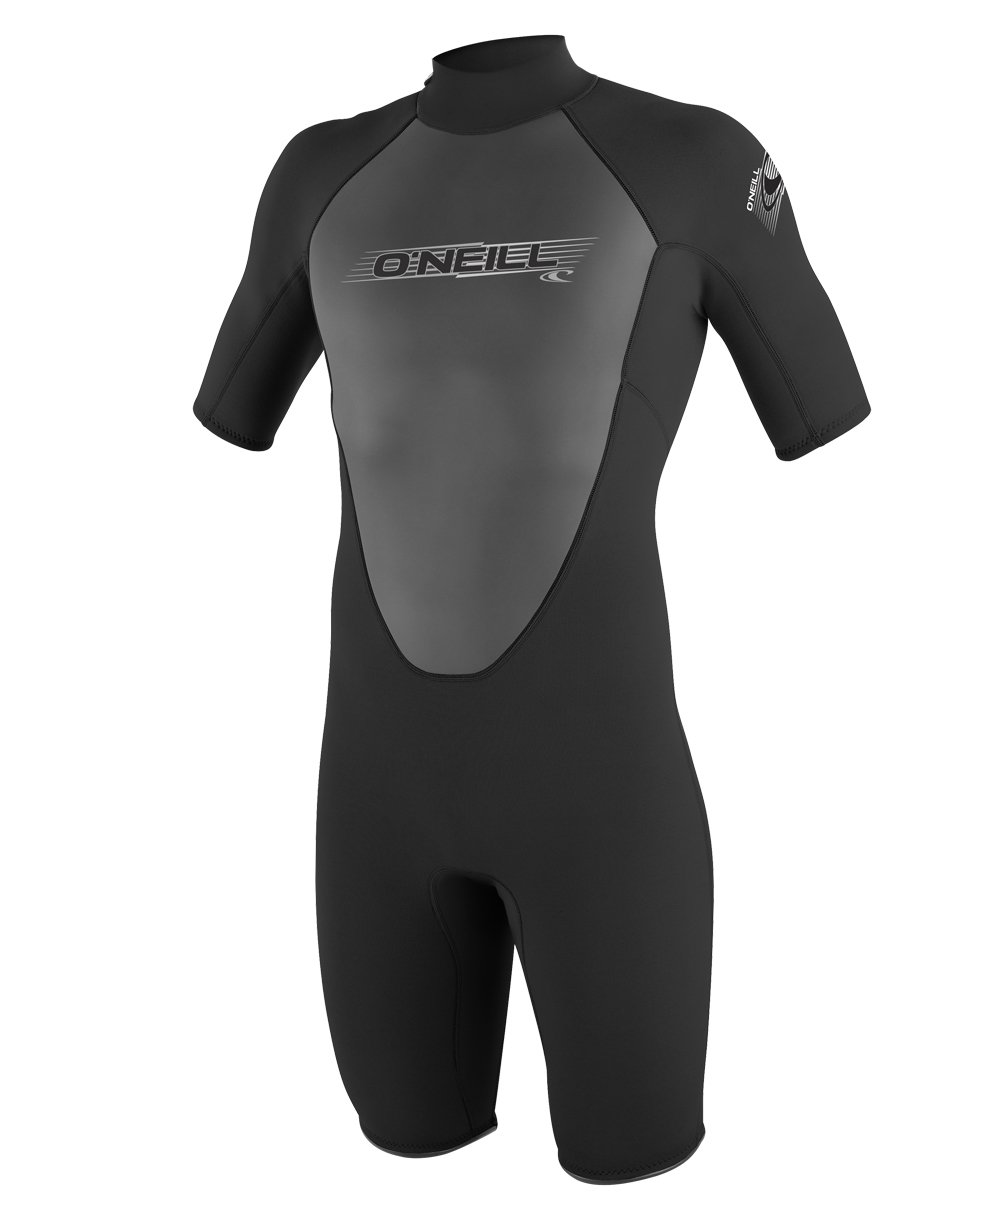 O'Neill Men's Reactor 2mm Back Zip Spring Wetsuit, Black, Medium by O'Neill Wetsuits